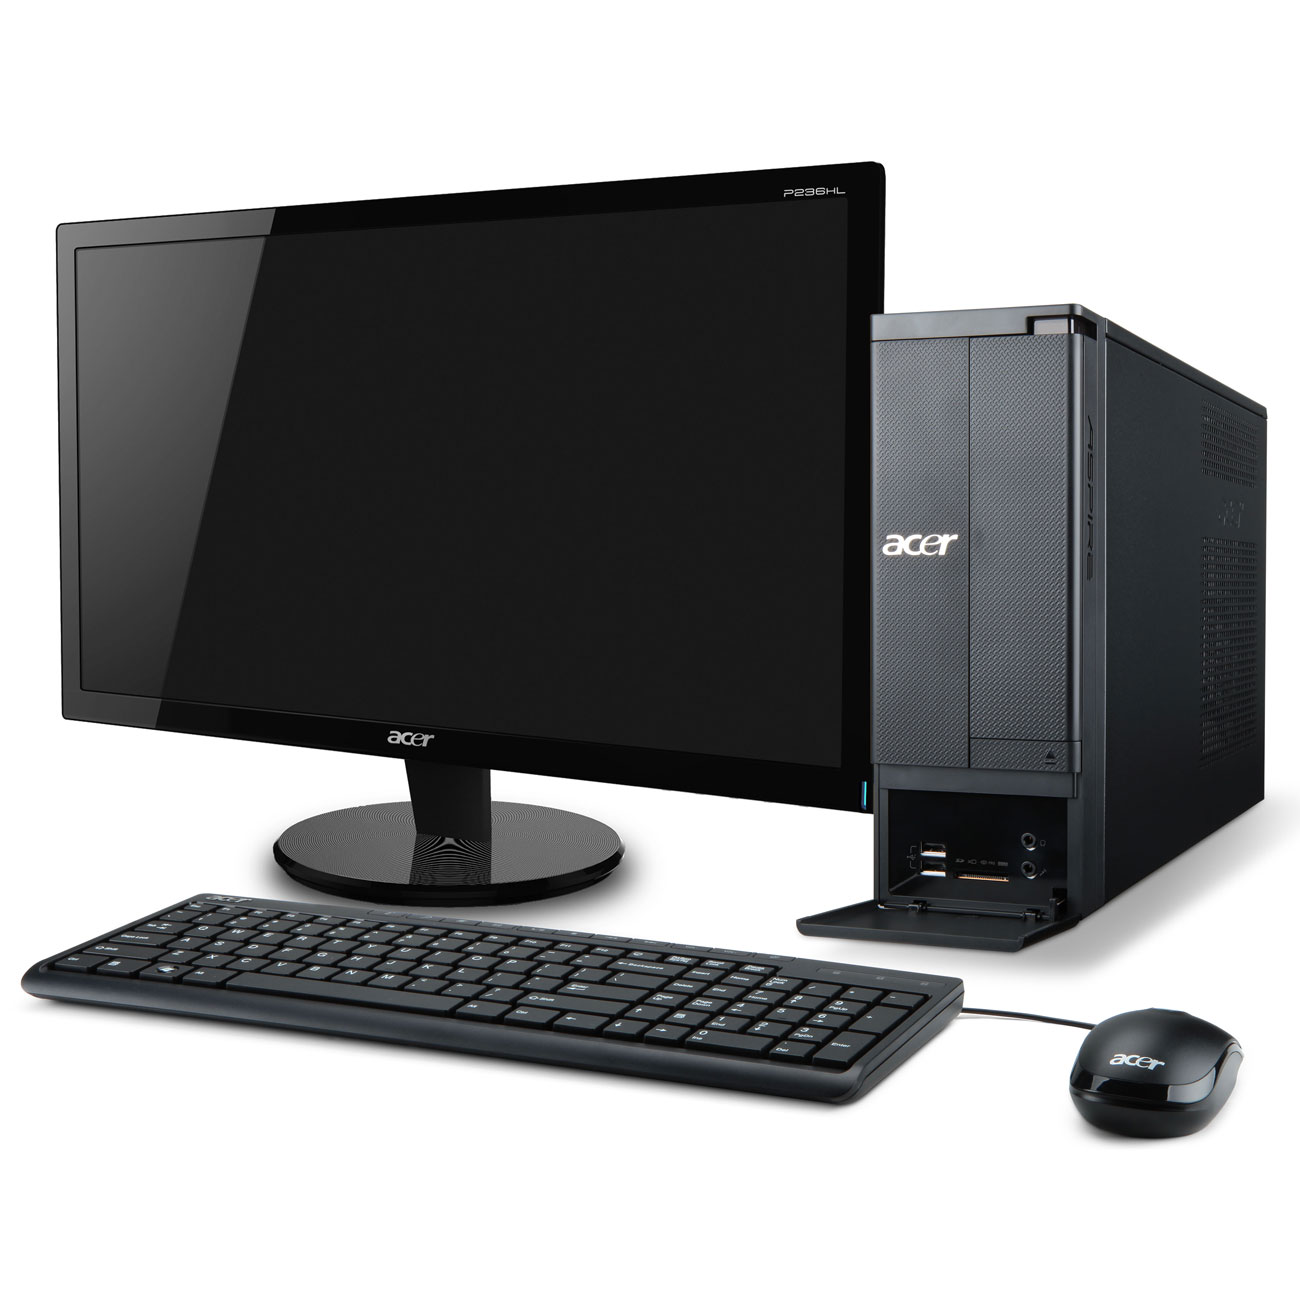 acer aspire x1430 006 ob 21 5 pc de bureau acer sur ldlc. Black Bedroom Furniture Sets. Home Design Ideas